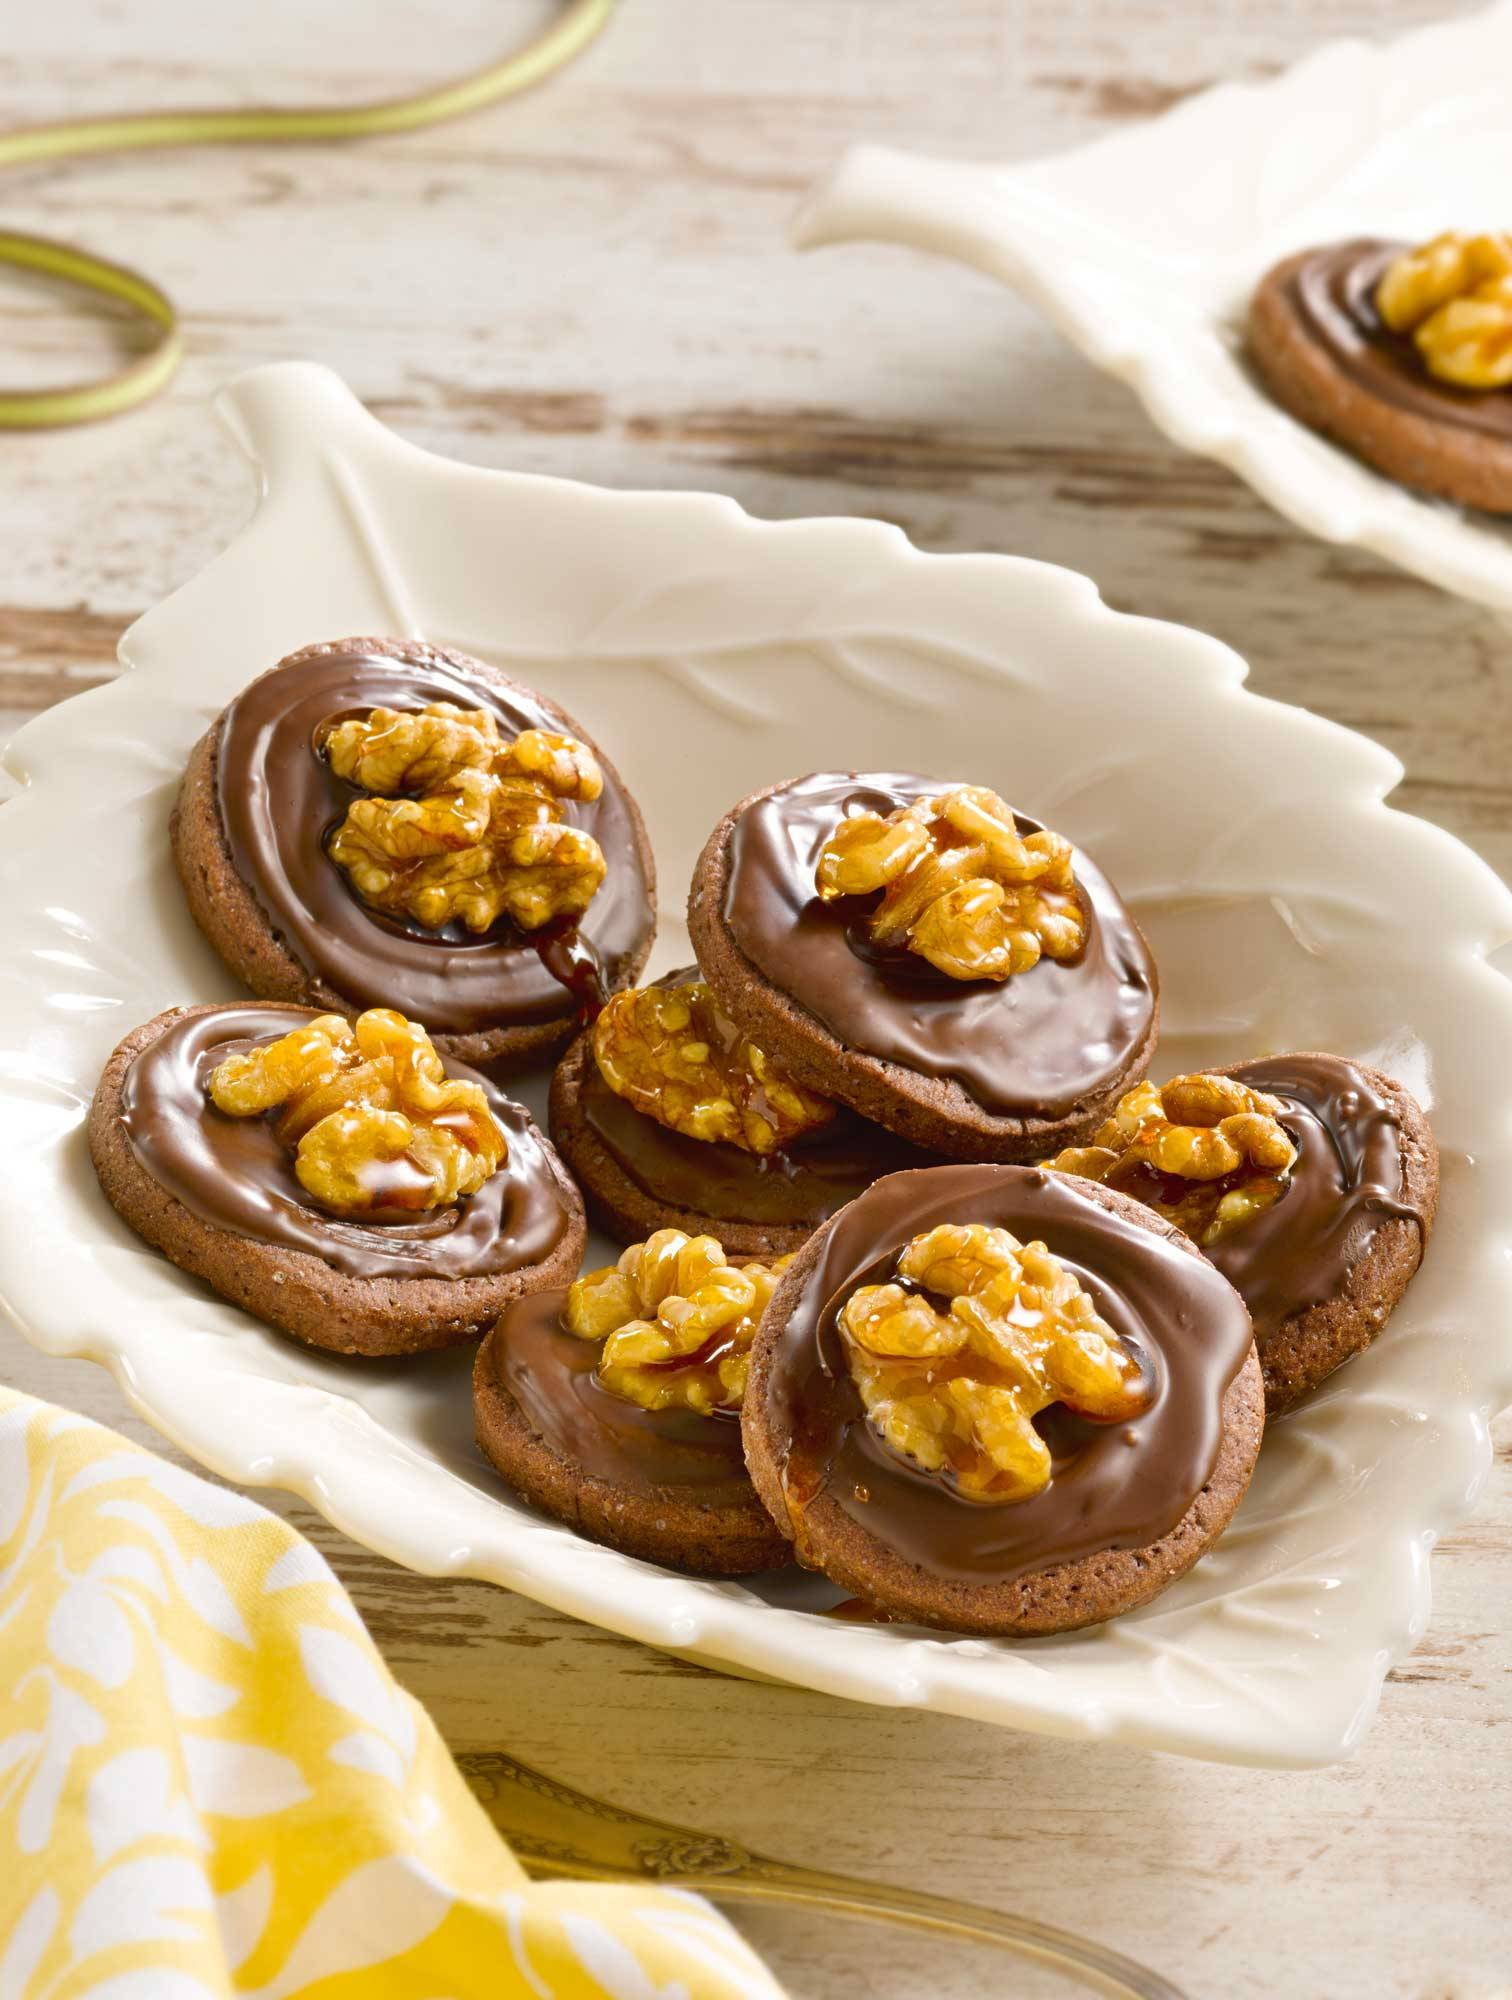 receta-galletas-chocolate-nueces 00405089